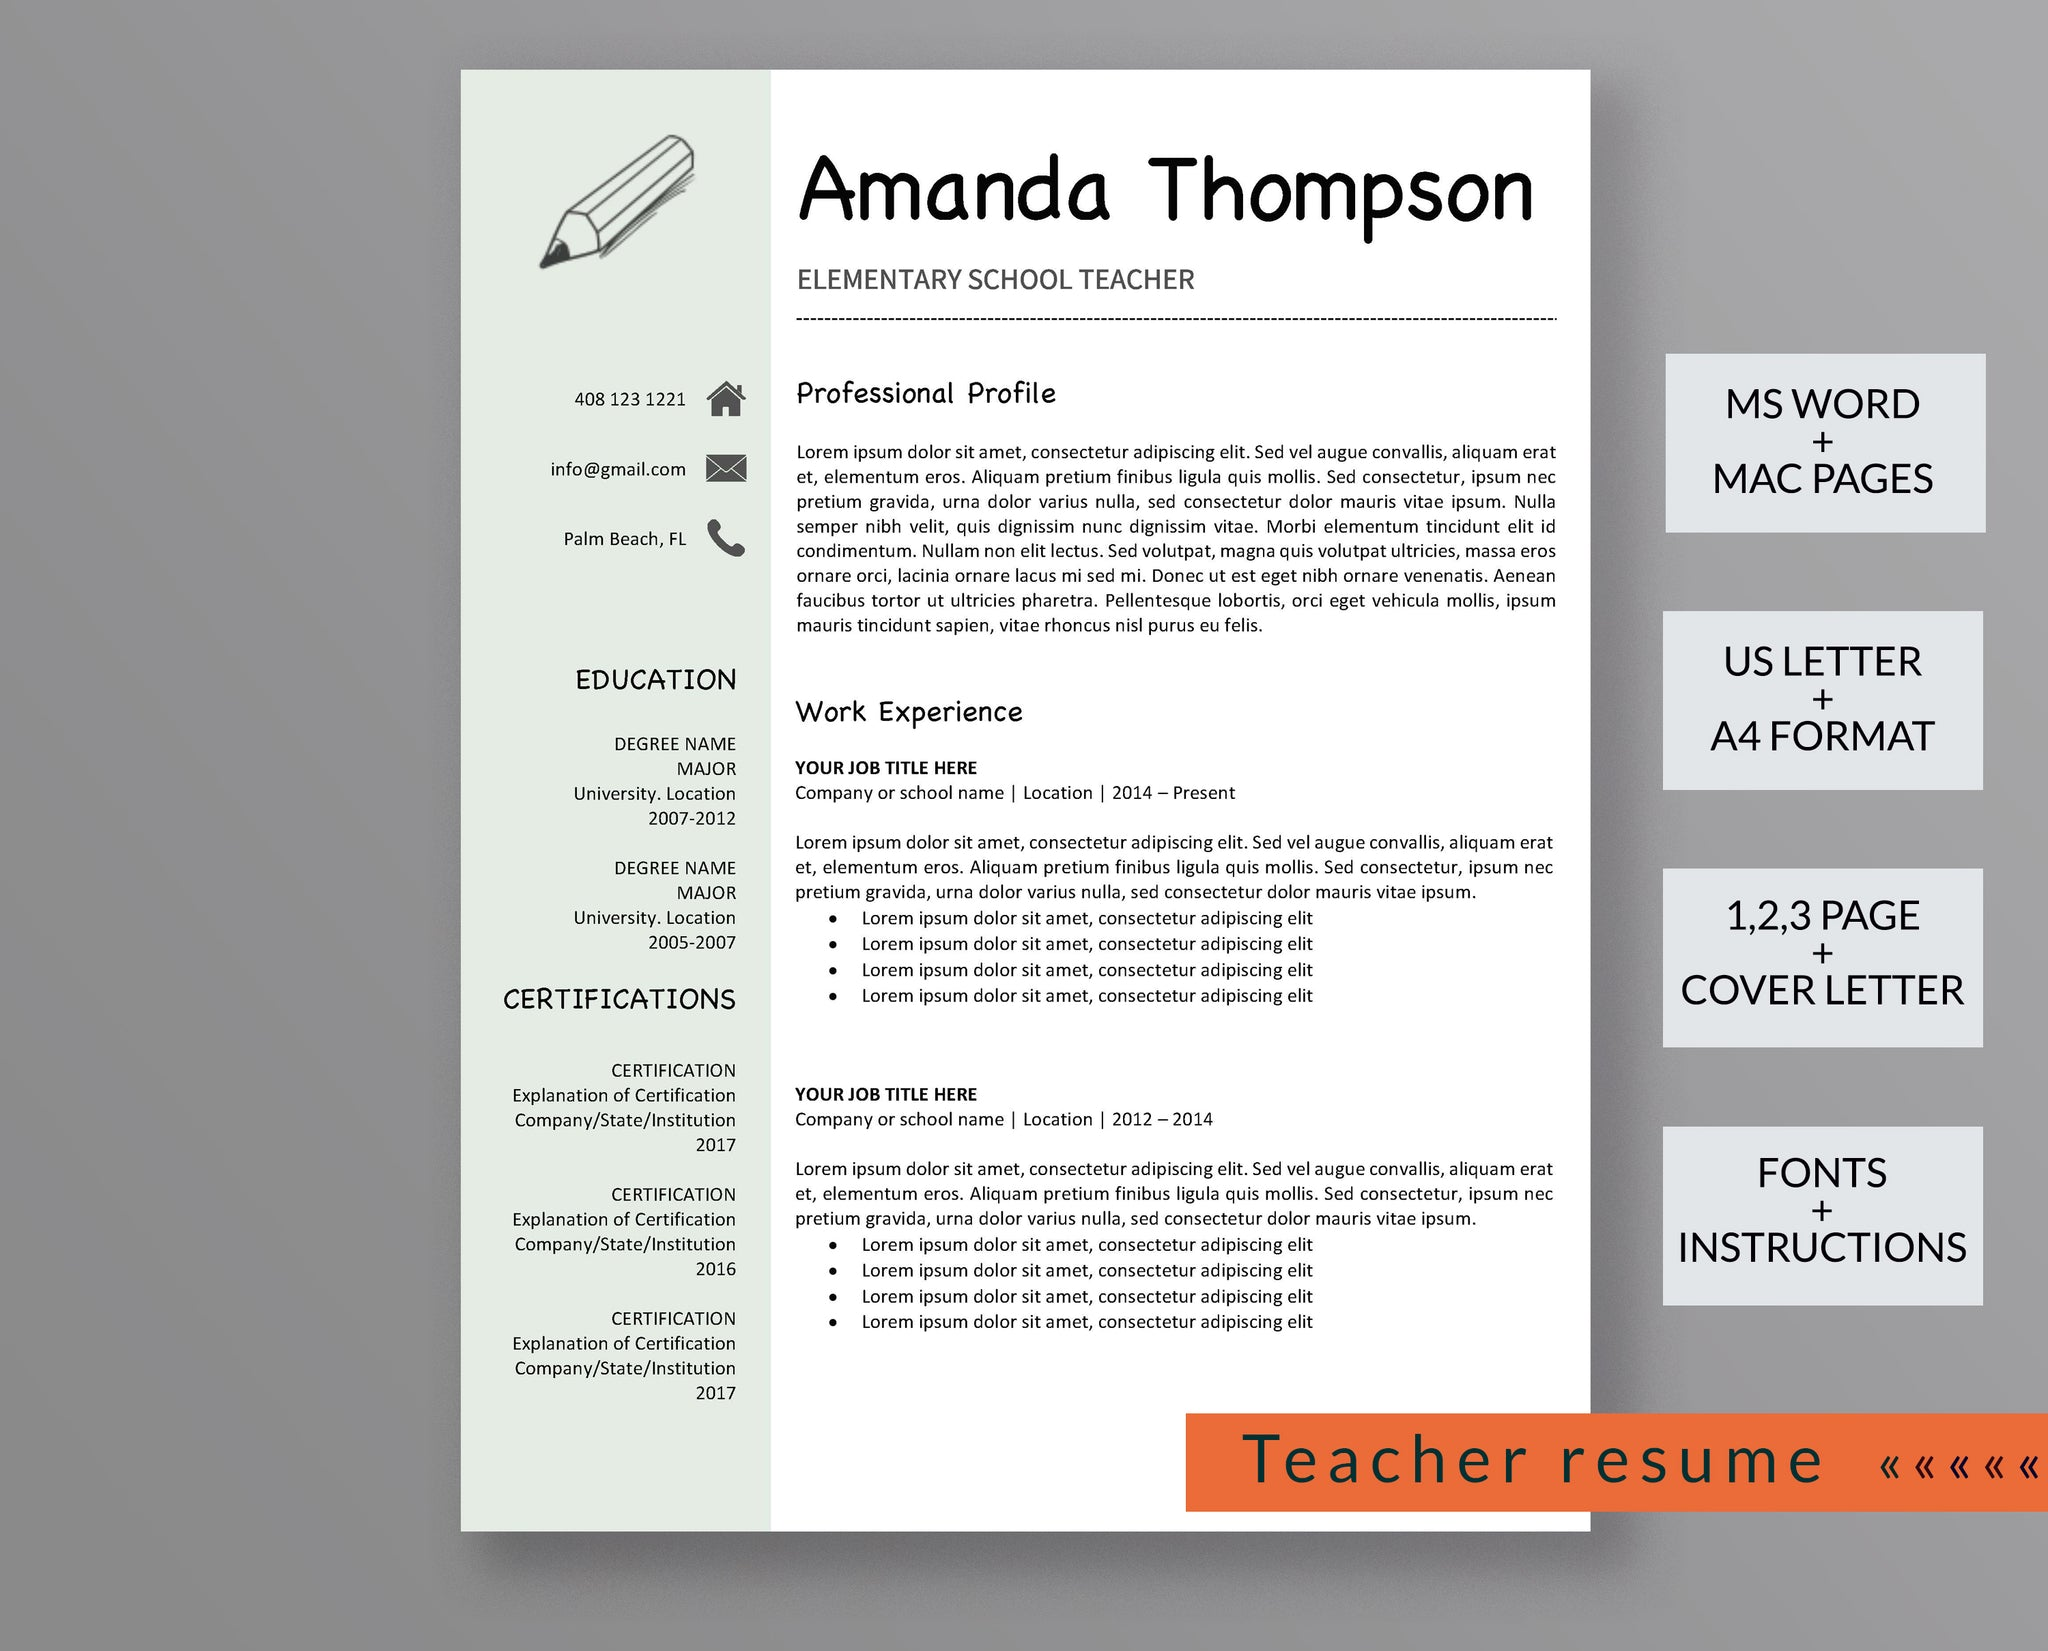 Teacher Resume Template Amanda Thompson - Outperforming Designs